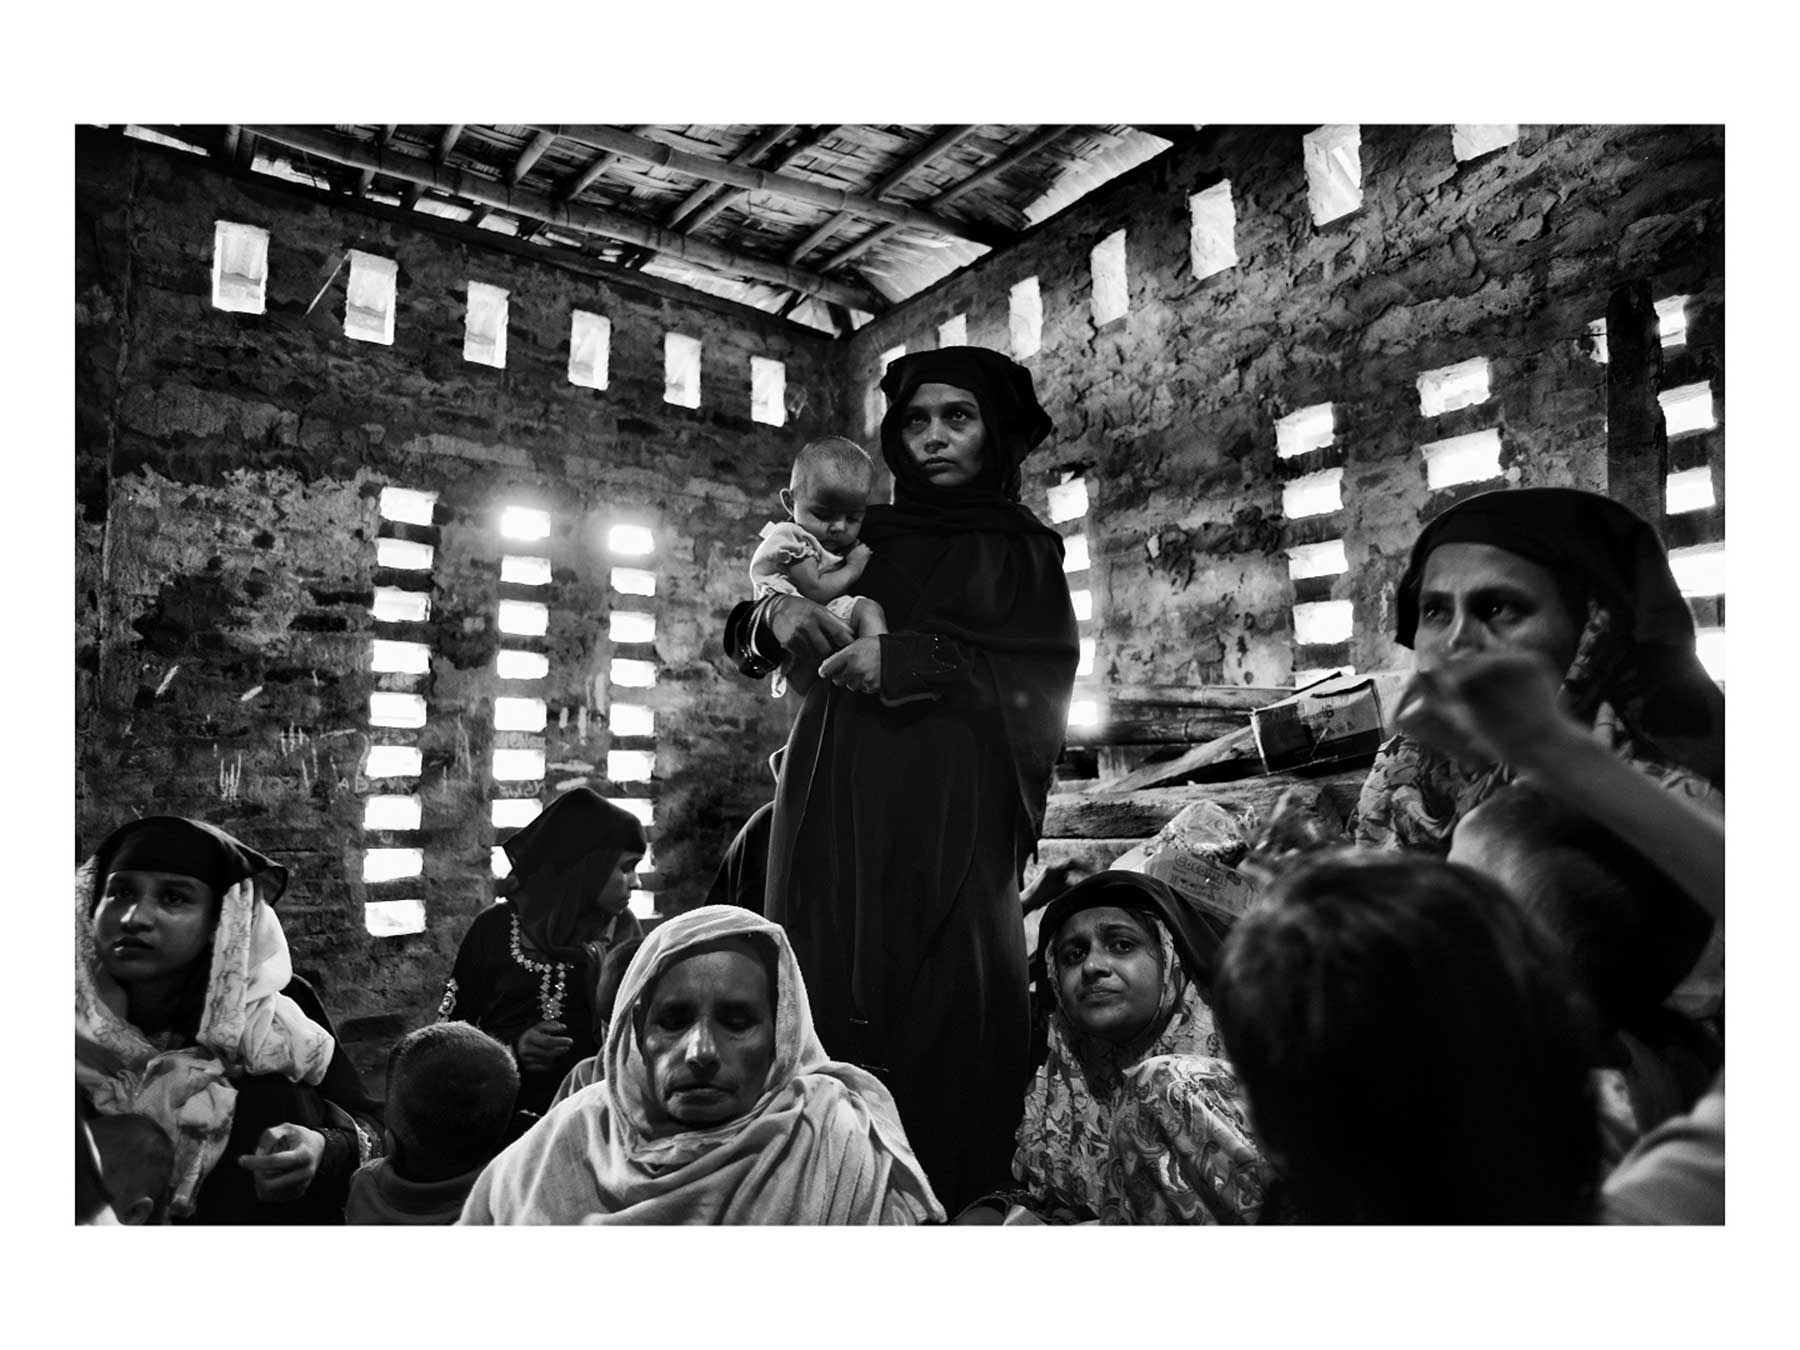 A Rohingya mother and child wait with other Rohingya to receive assistance at a makeshift medical clinic near the Kutupalong refugee camp. Photo by Greg Constantine.